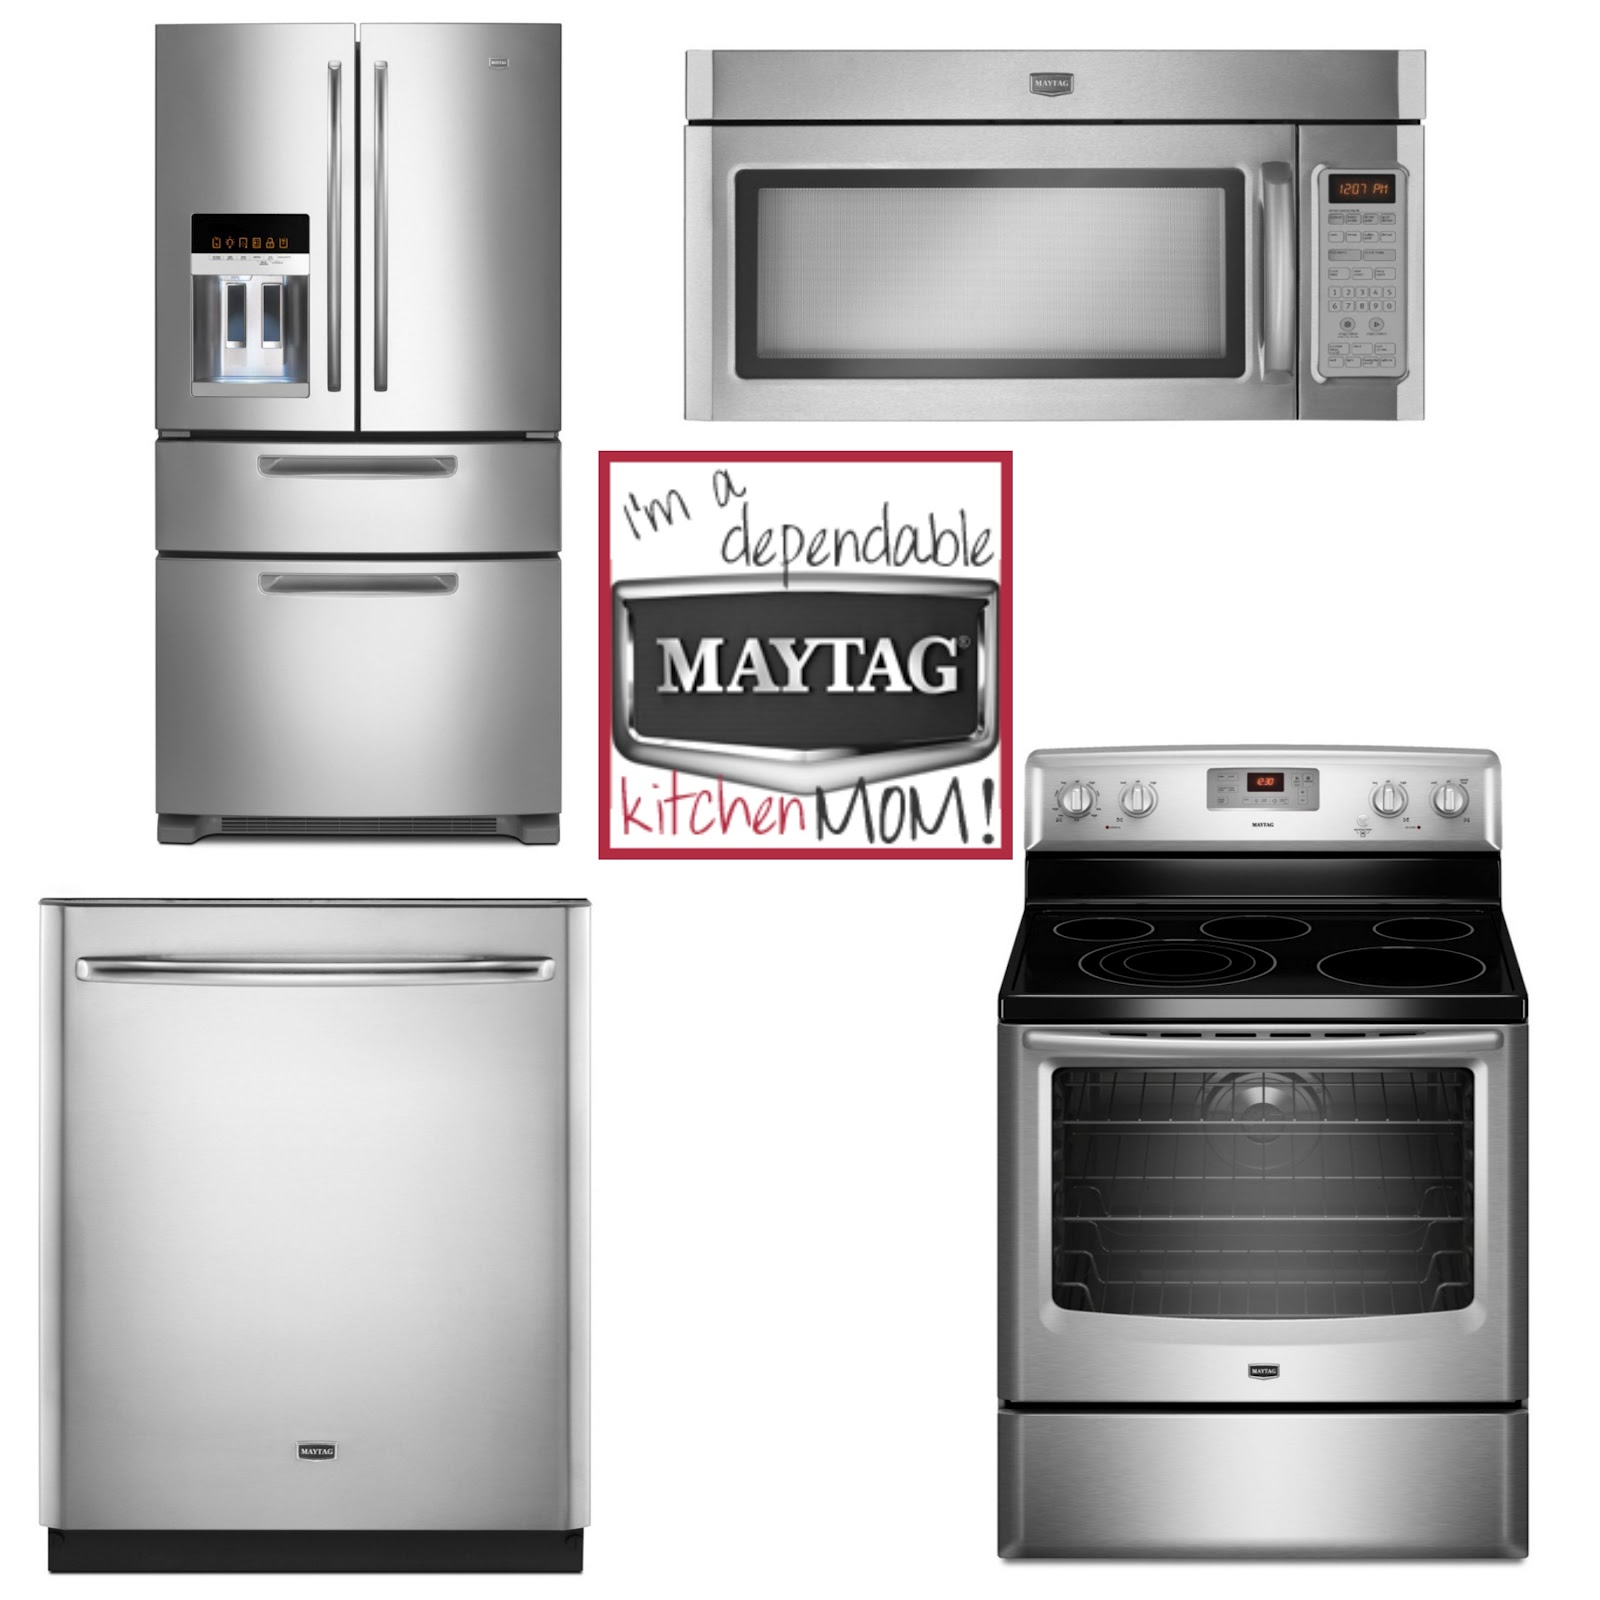 maytag kitchen appliances design ideas is inspiring me to cook and clean say what